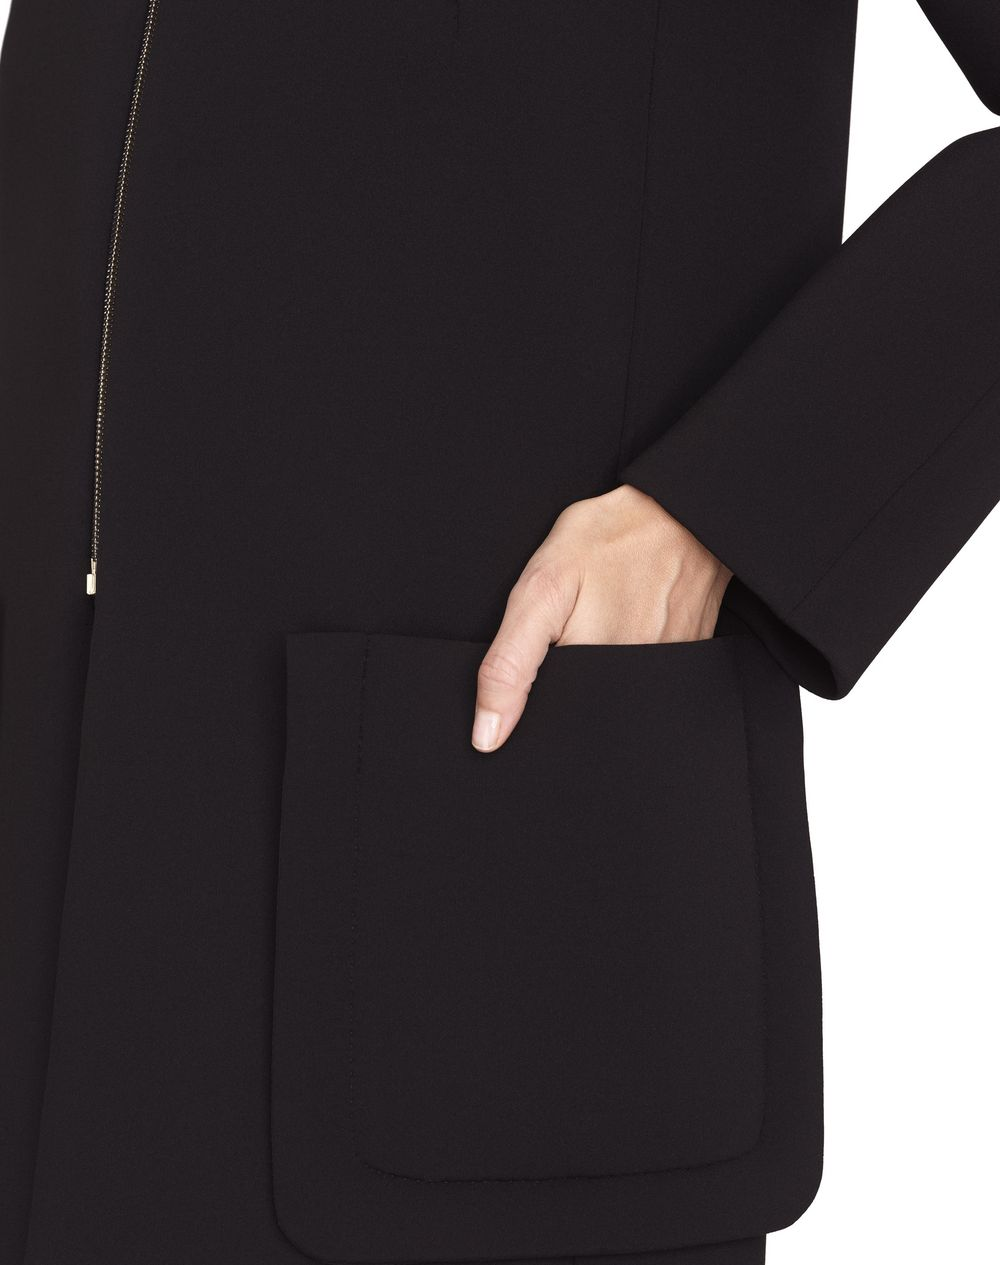 SINGLE-BREASTED NEOPRENE COAT - Lanvin